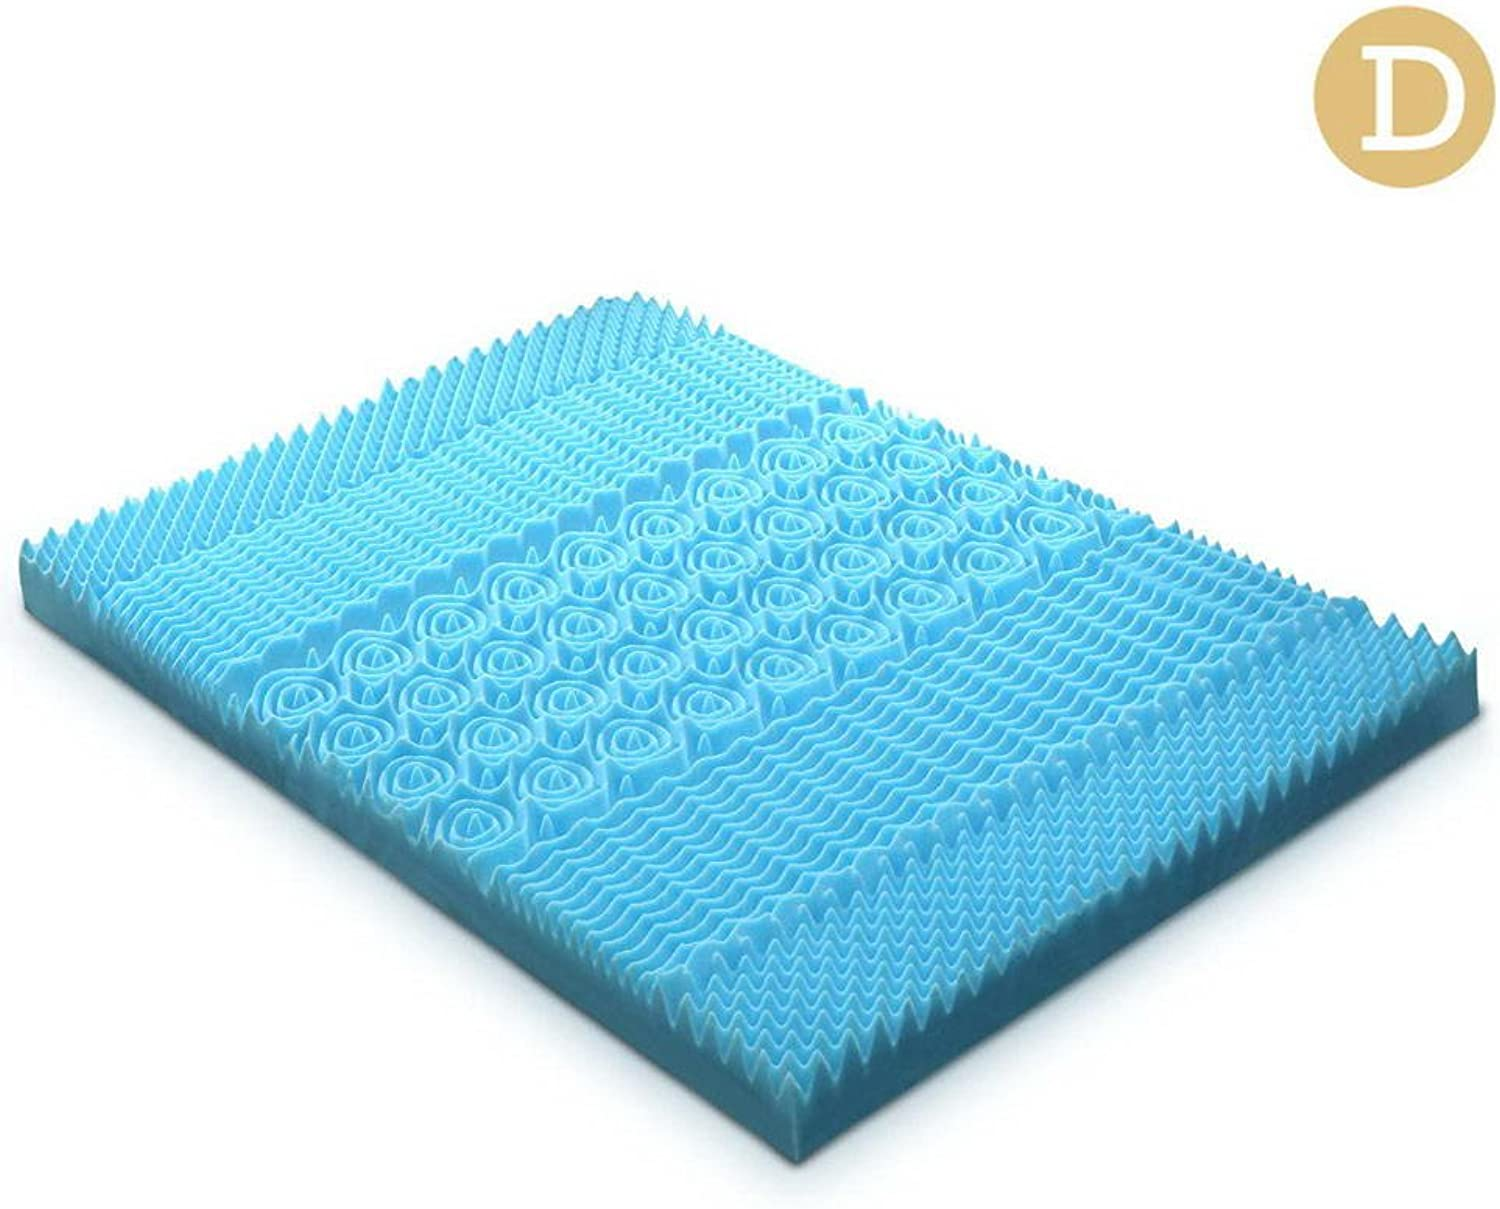 Double Size 5cm Thick Cool Gel Mattress - bluee